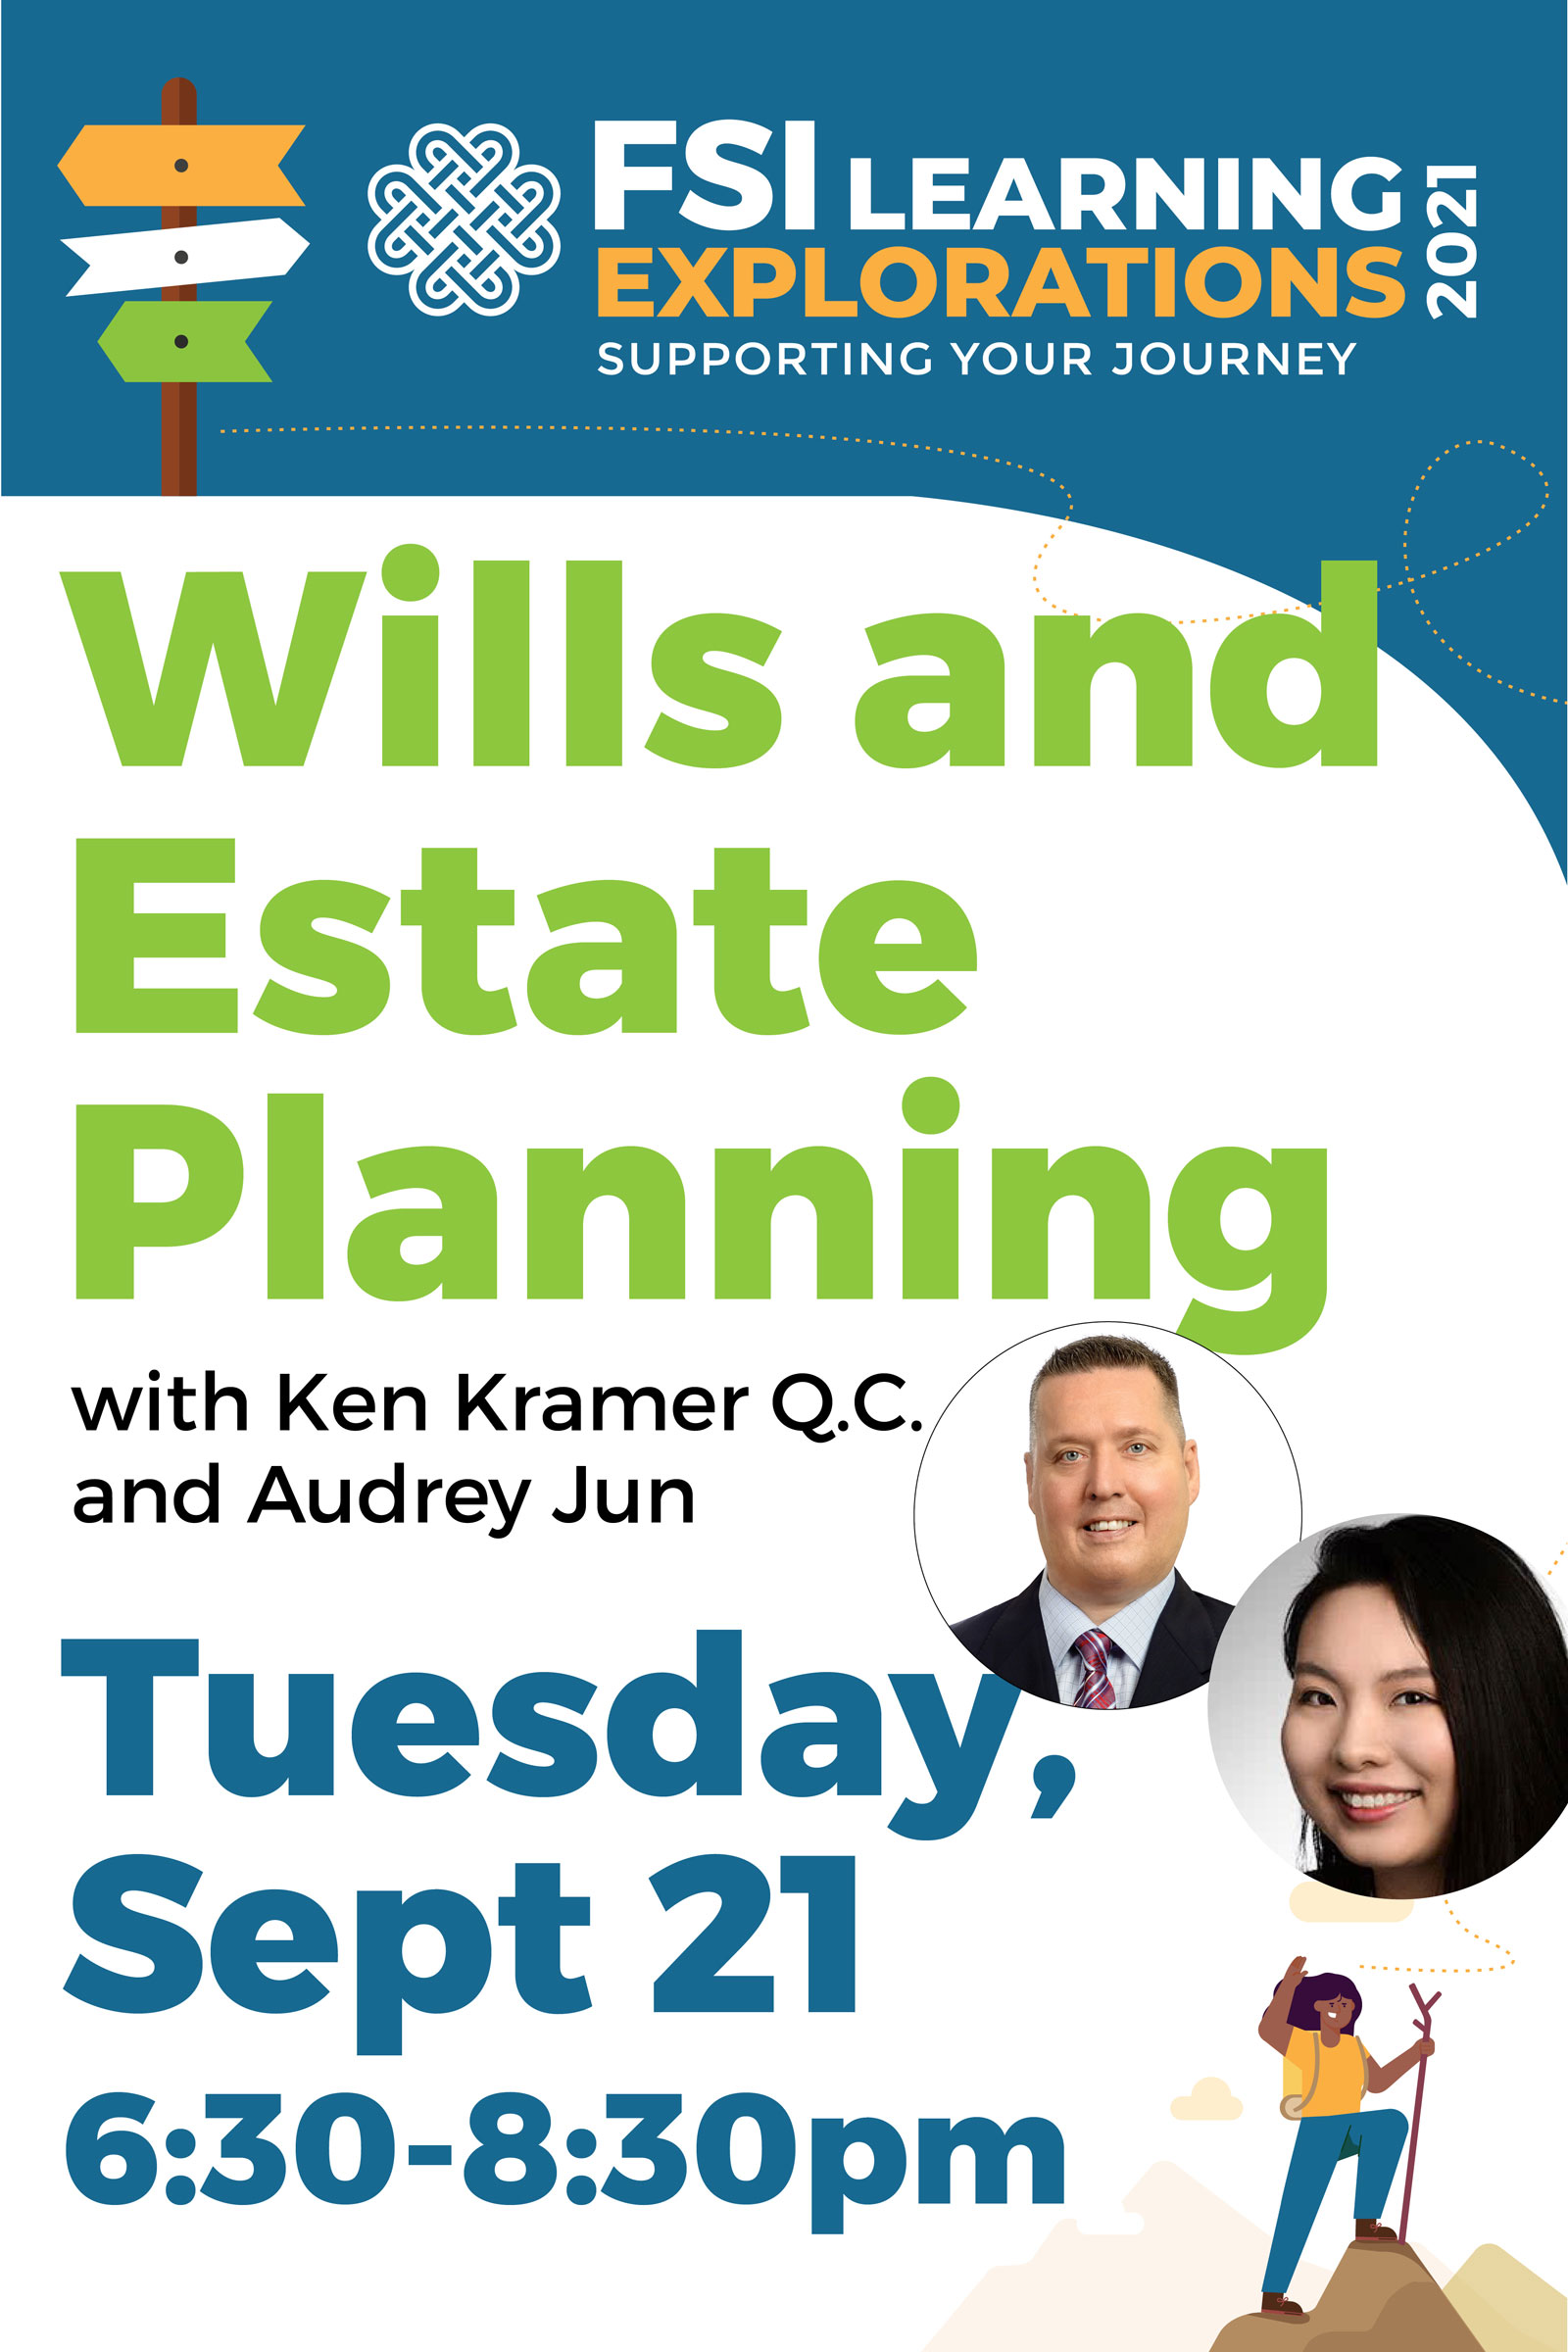 FSI Learning Explorations ~ Wills and Estate Planning